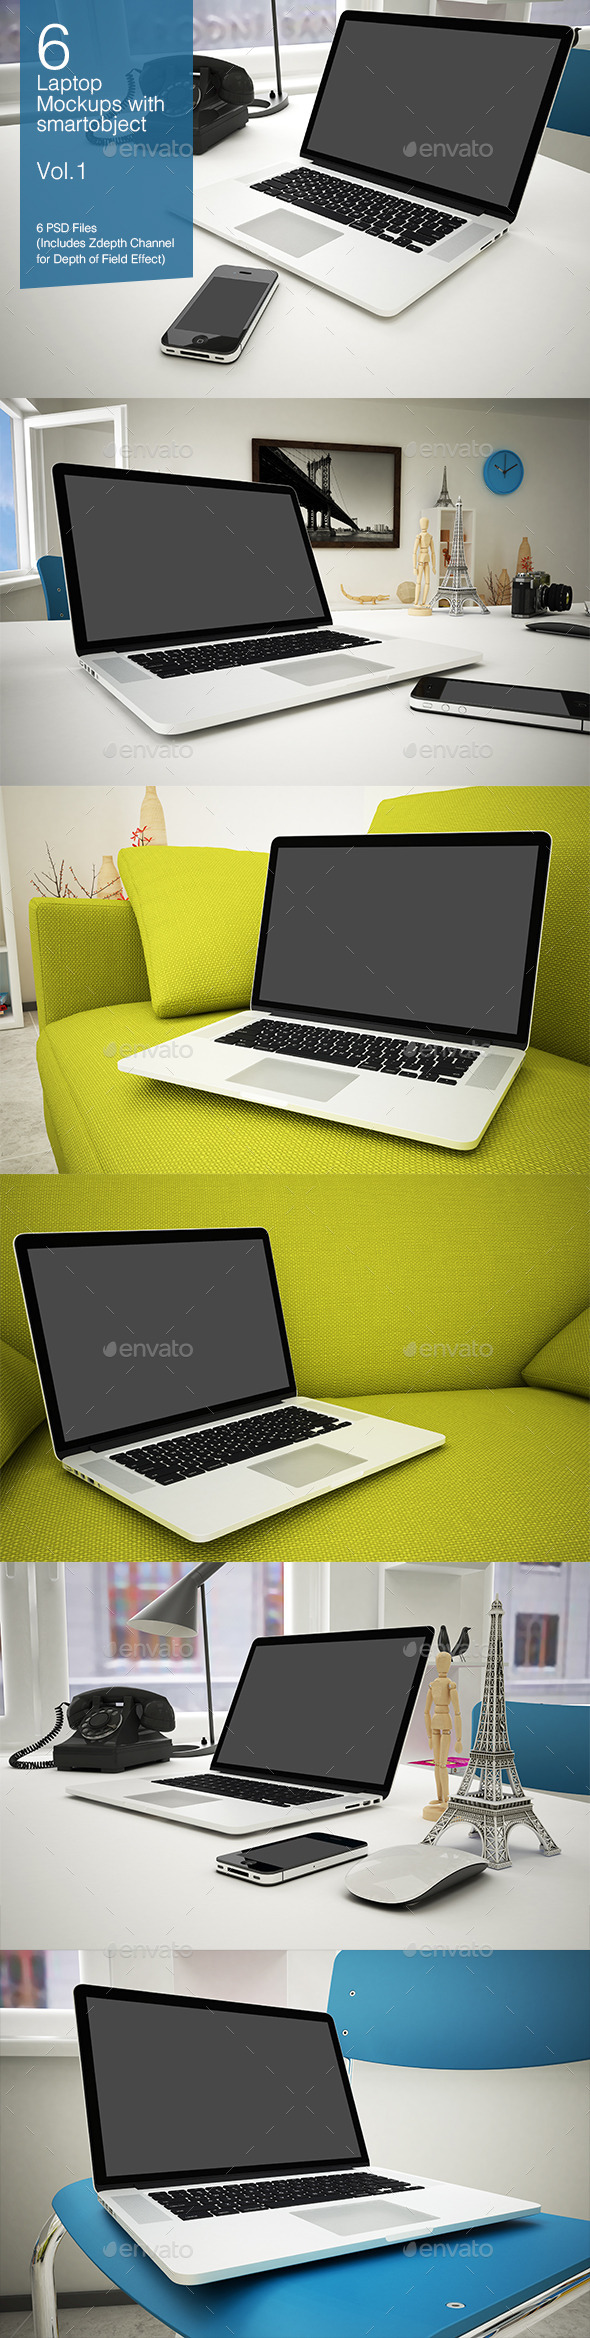 GraphicRiver Laptop Mockup 6 Poses Vol.1 8927410